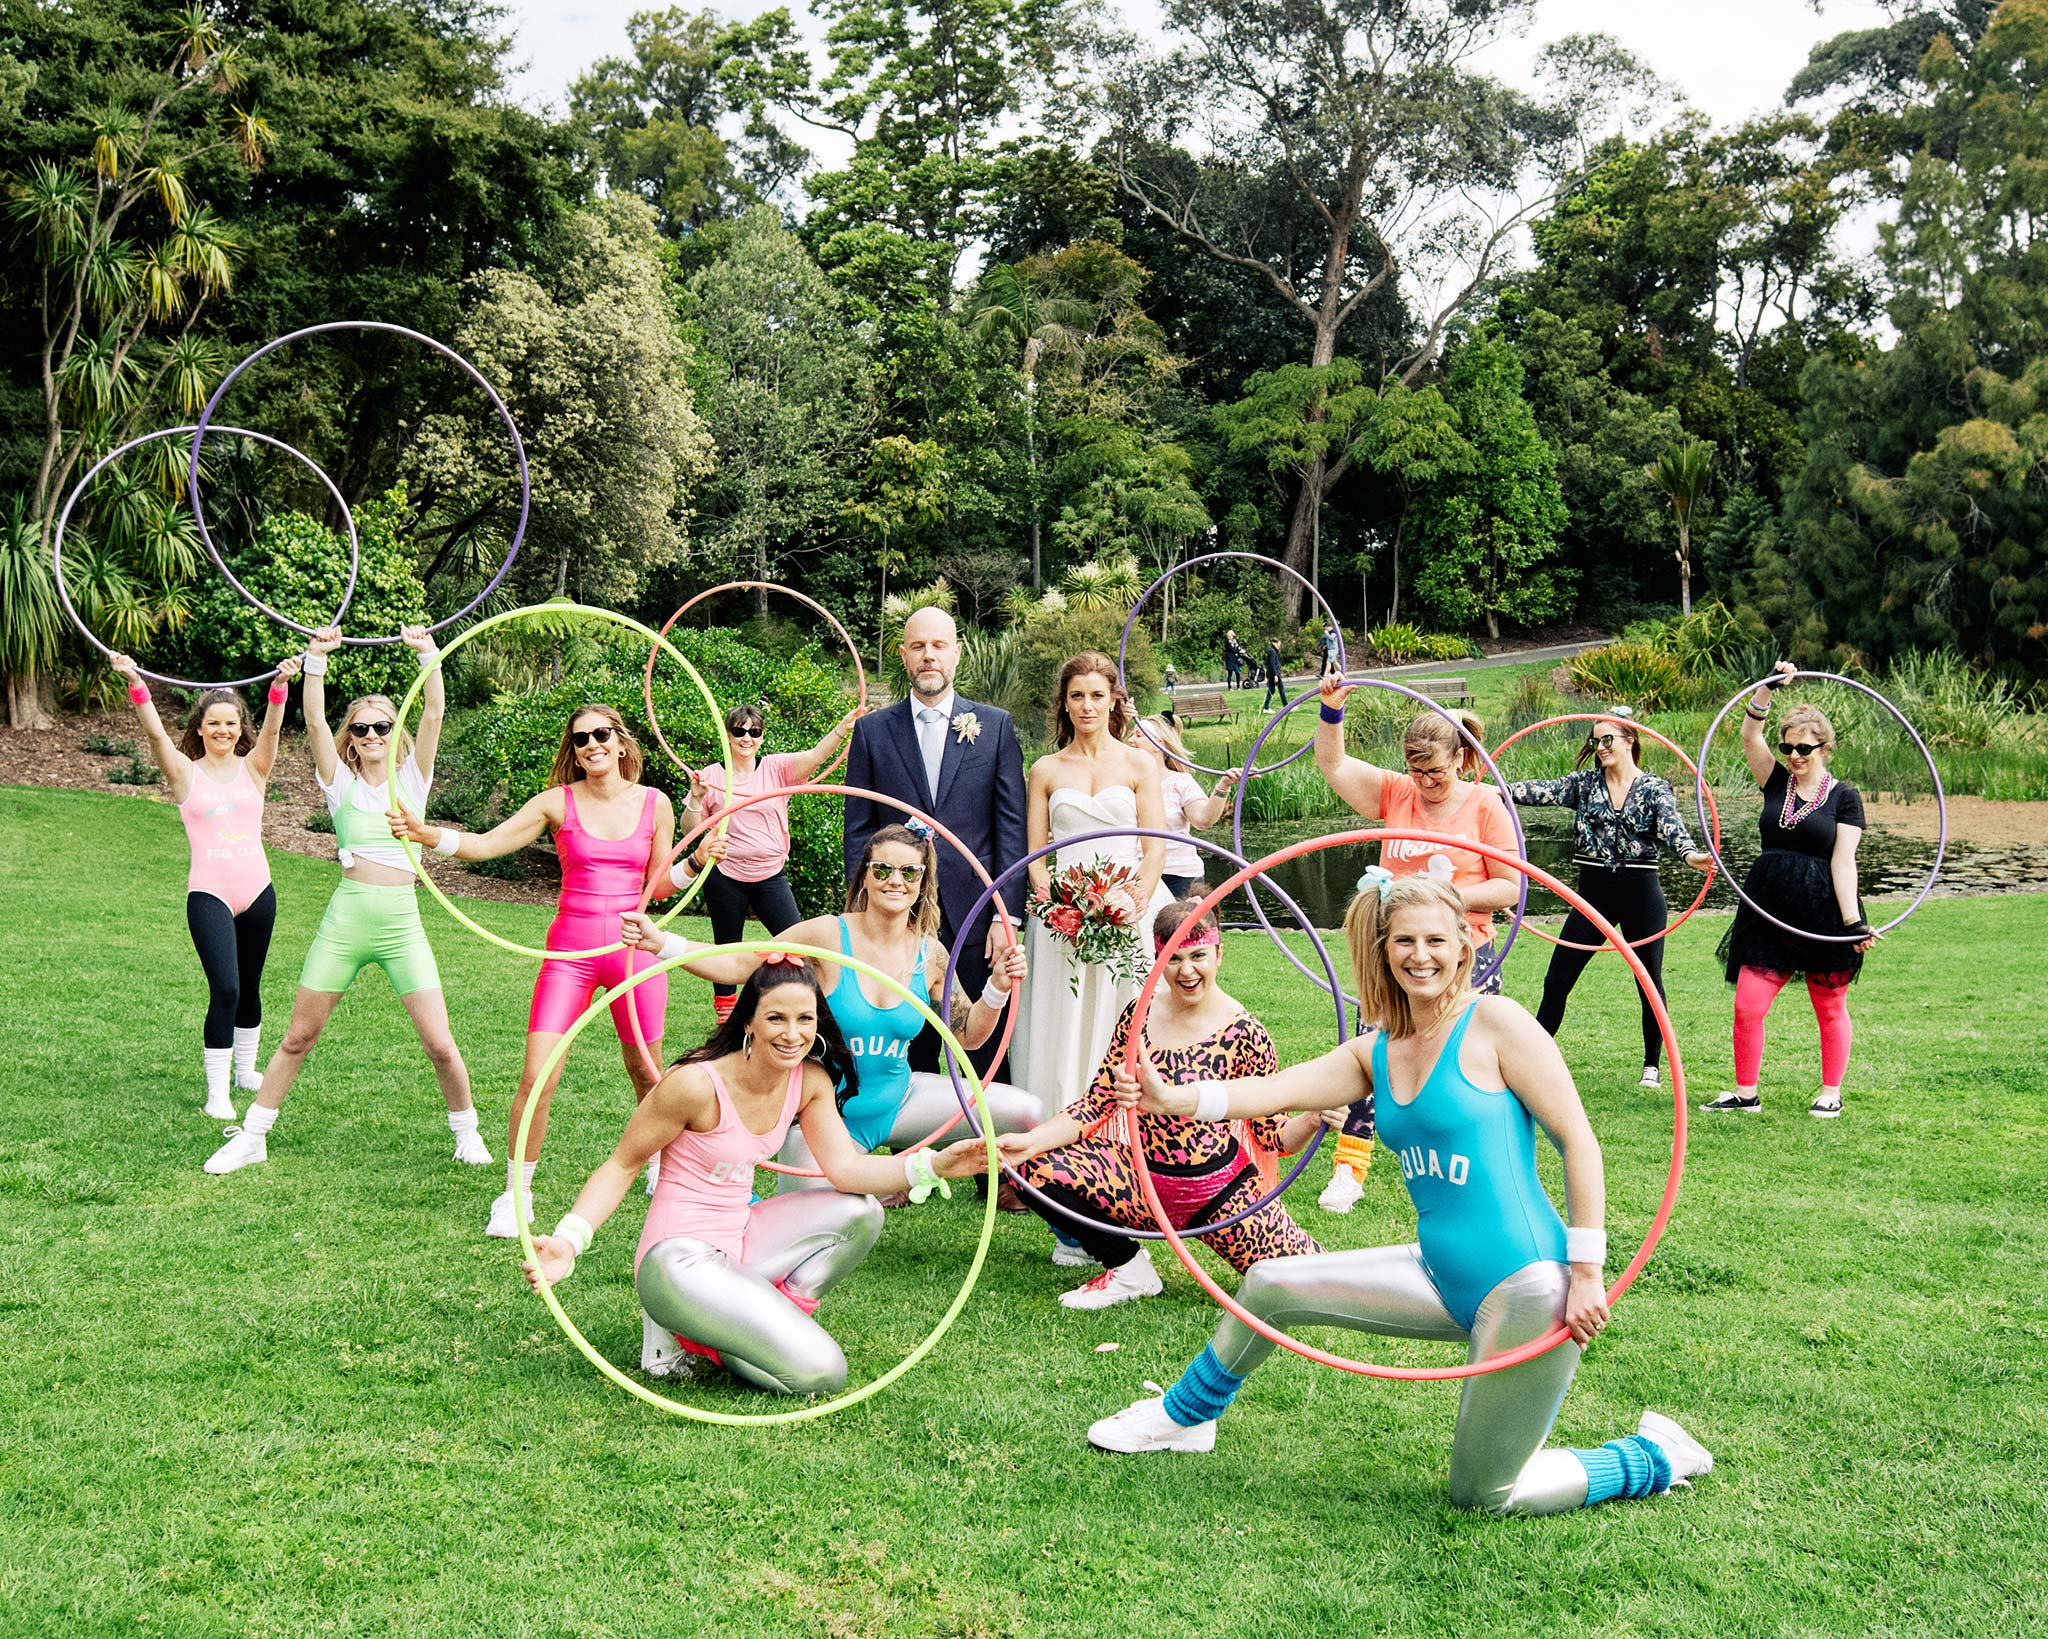 Melbourne Royal Botanical Garden Wedding hoola hoop group shot